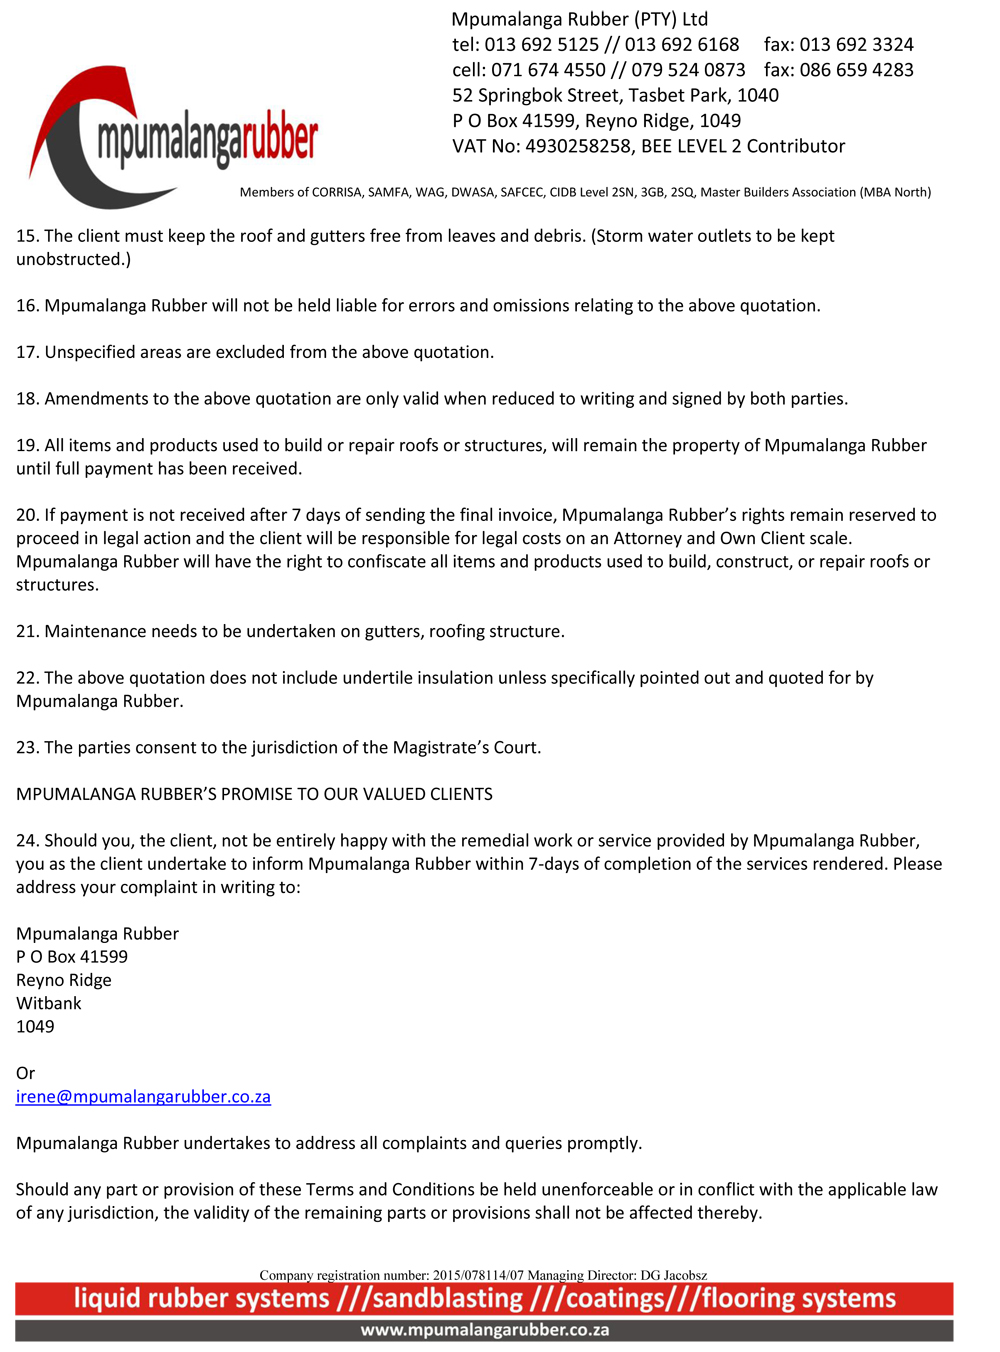 Mpumalanga Rubber - Terms and conditions-July2017-2